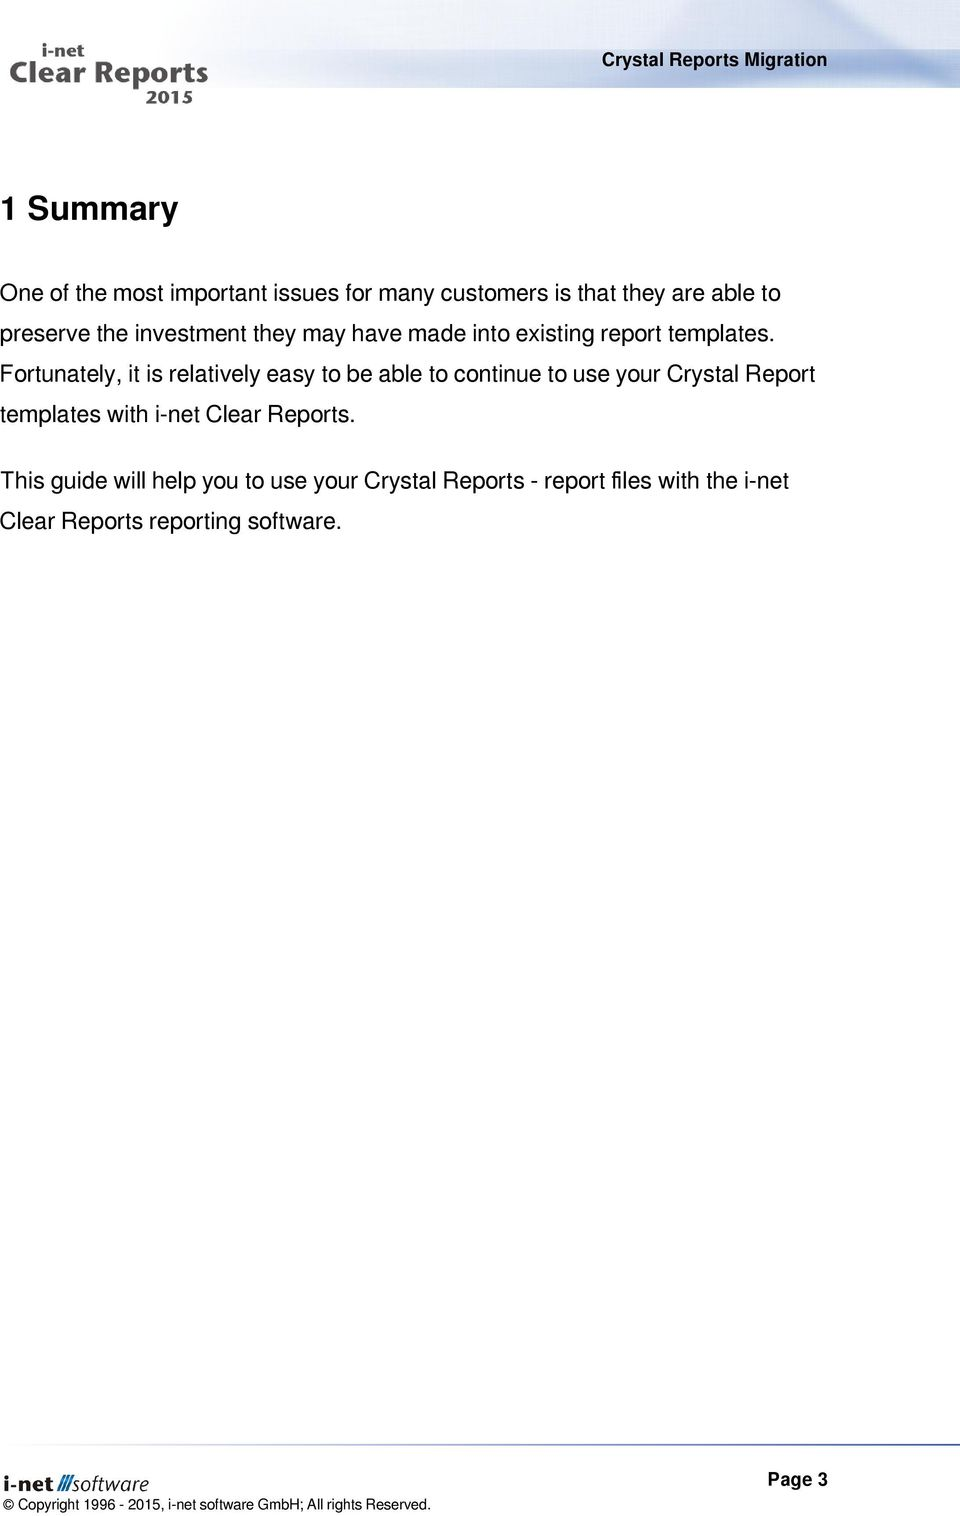 crystal reports migration guide problems and solutions pdf